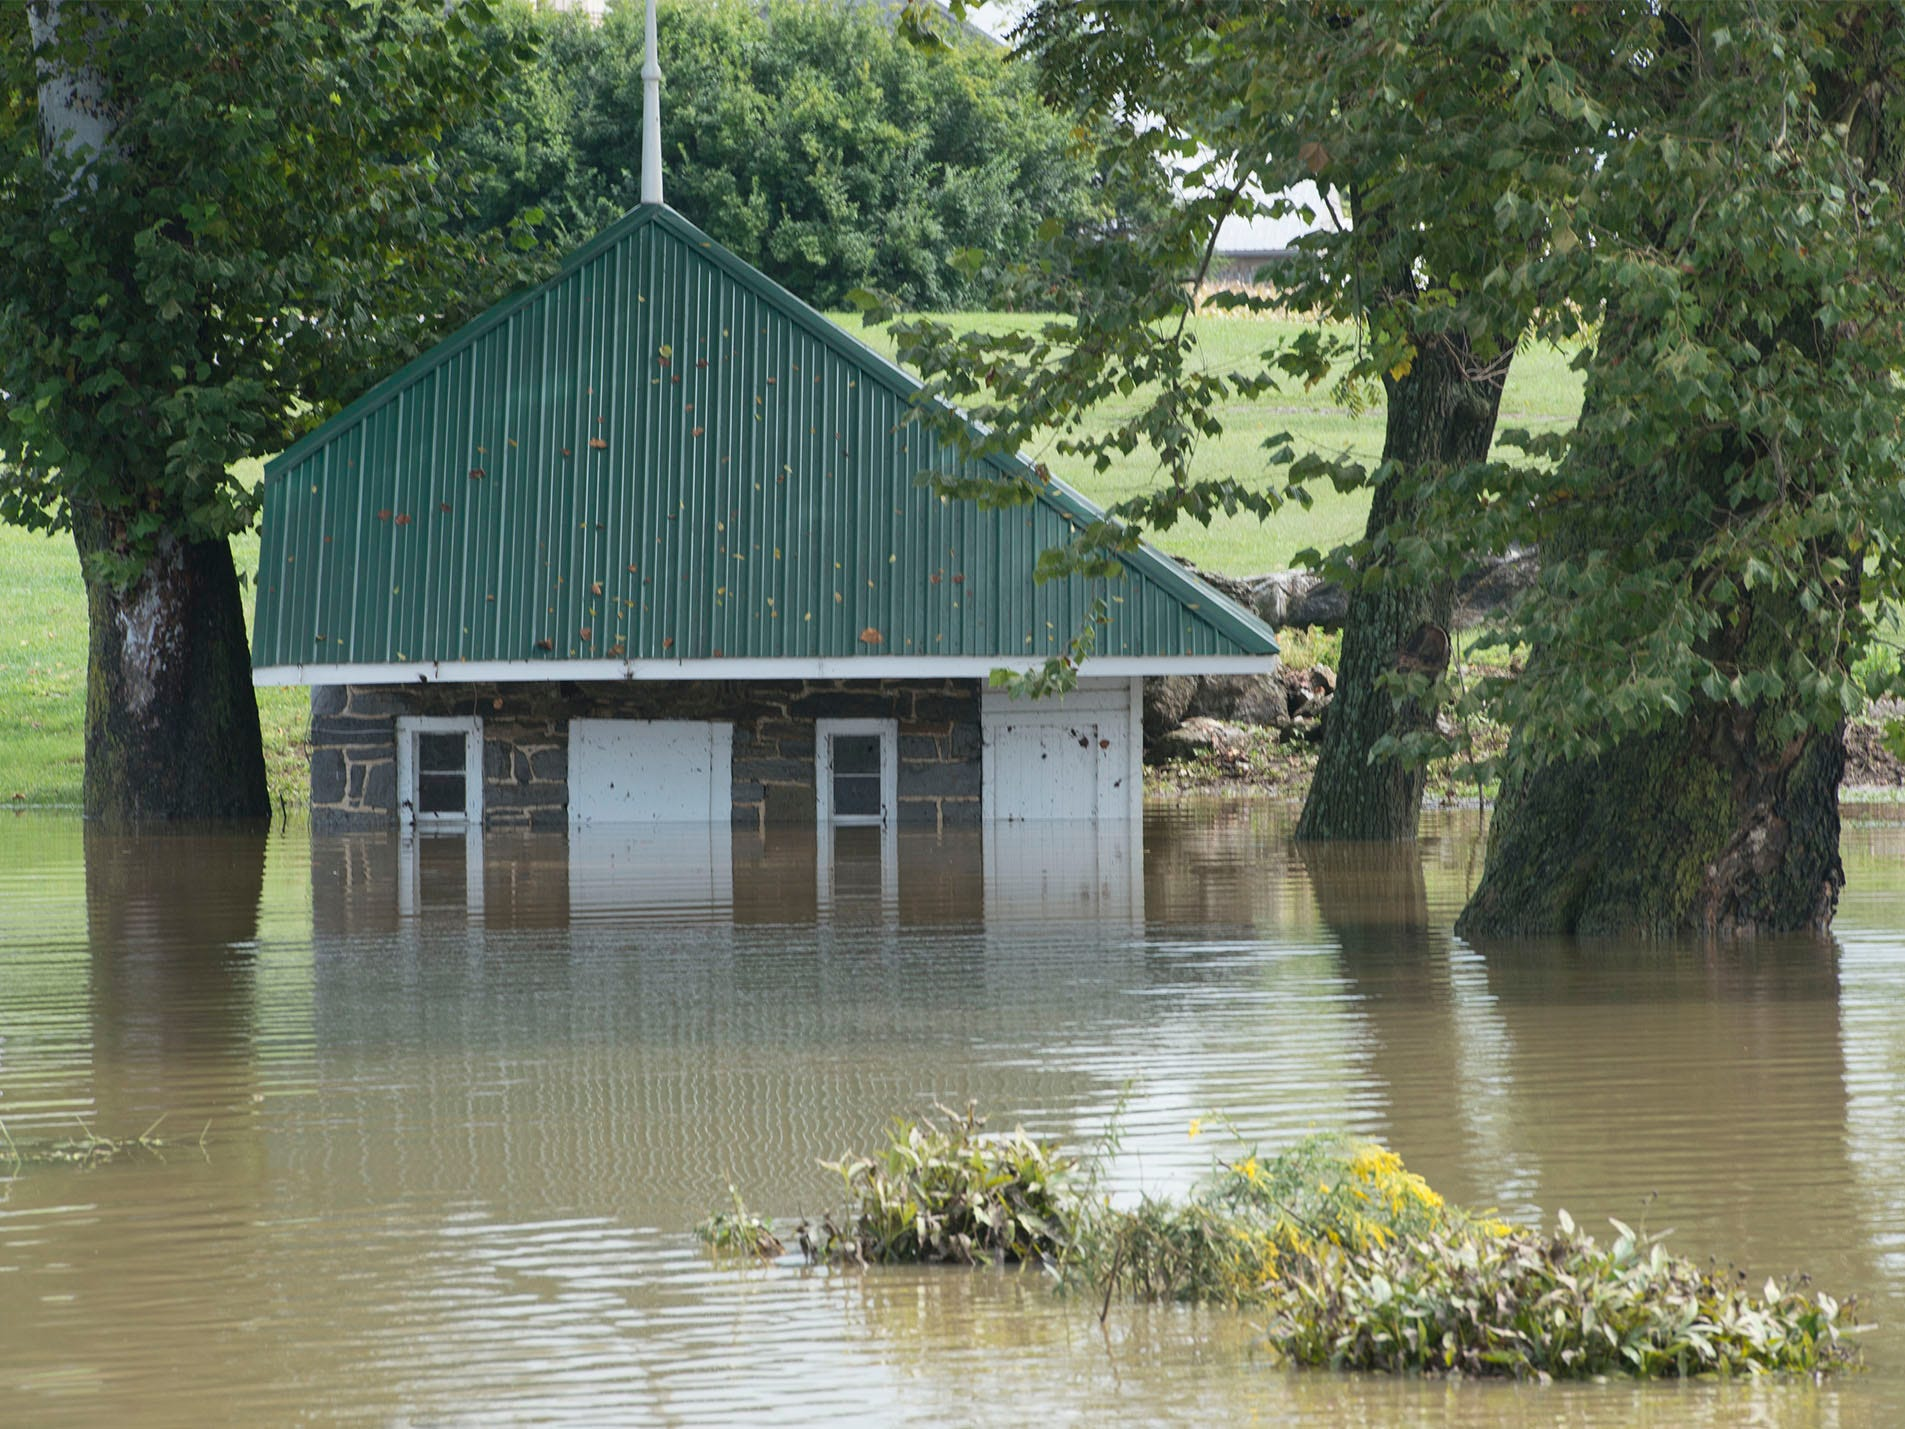 A springhouse is flooded at a farm off Shimpstown Road. A bridge was destroyed and there is street flooding and road closings around Shimpstown Road in the Mercersburg area on Thursday, September 13, 2018.